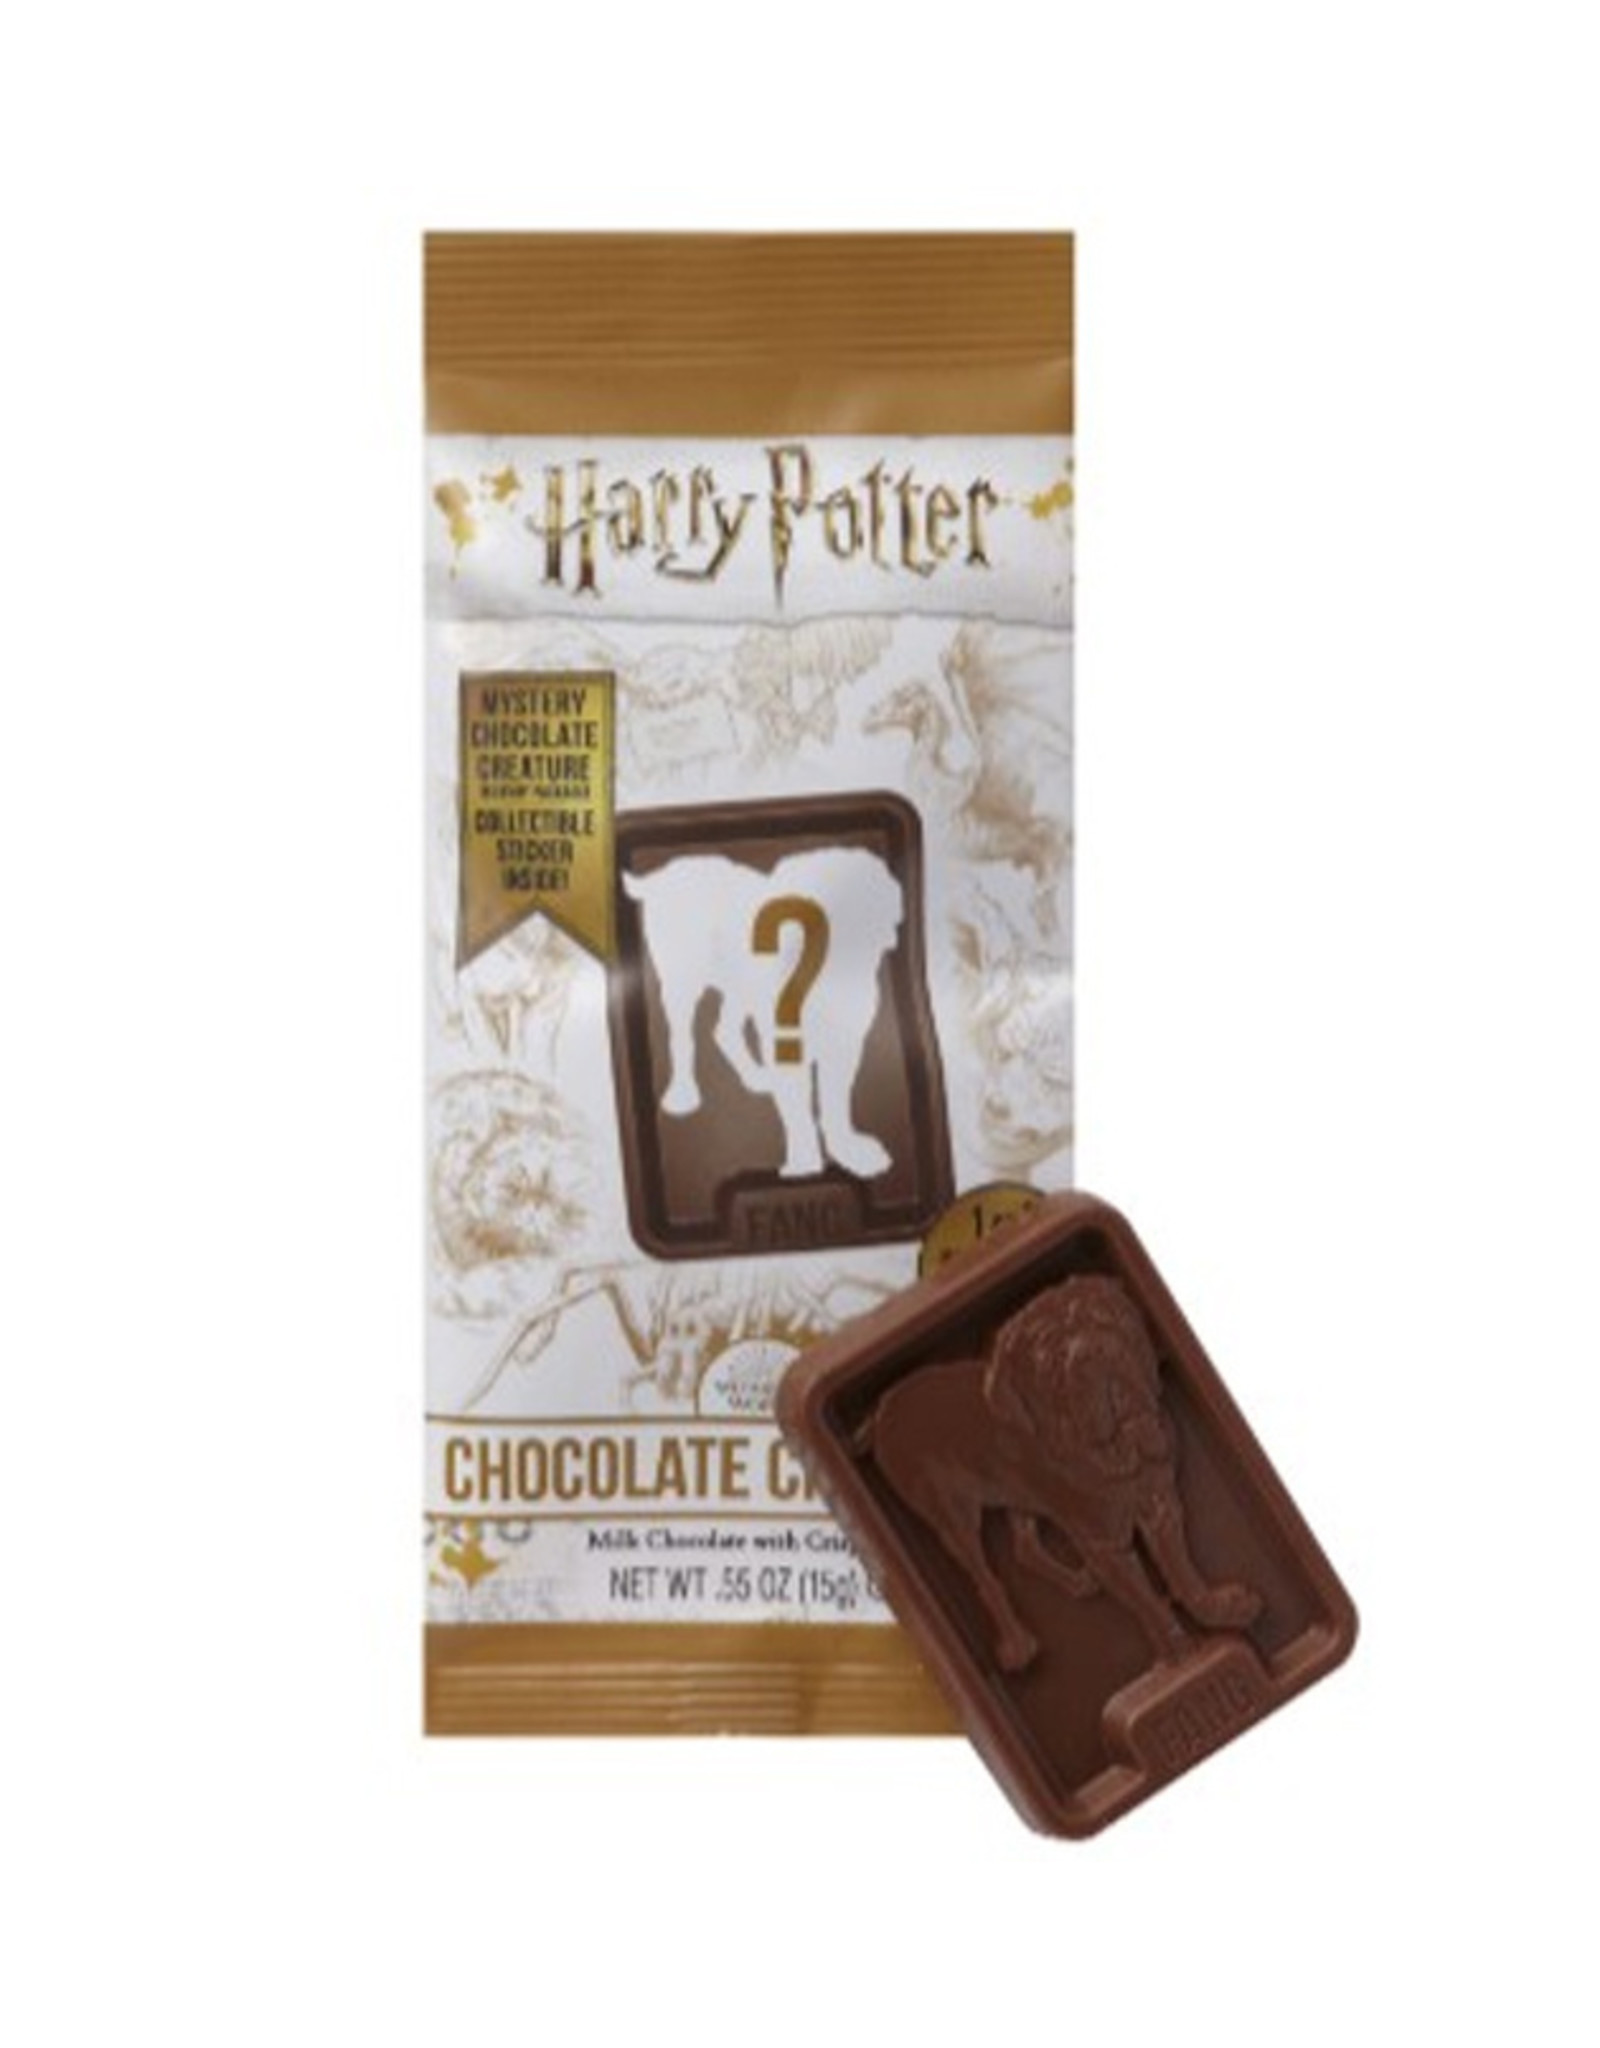 Harry Potter Chocolate Creatures (15g)